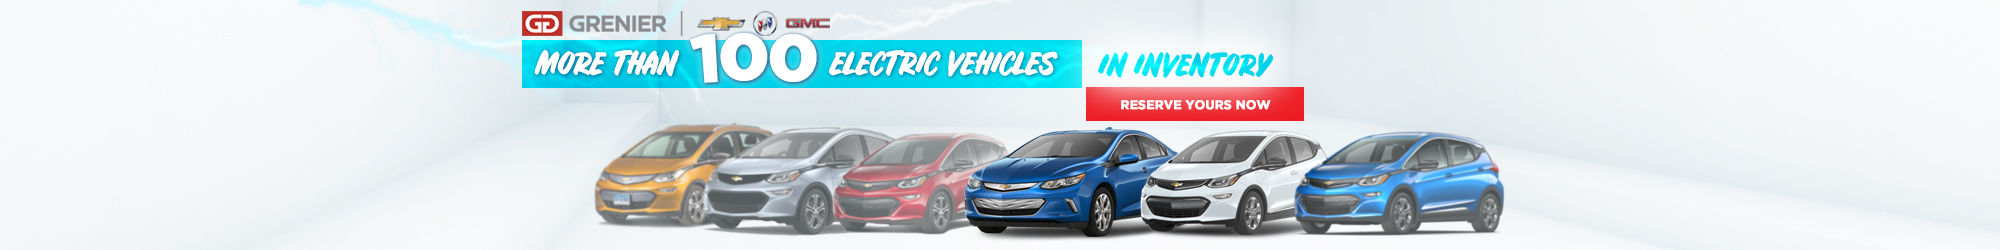 100 electric vehicles in inventory